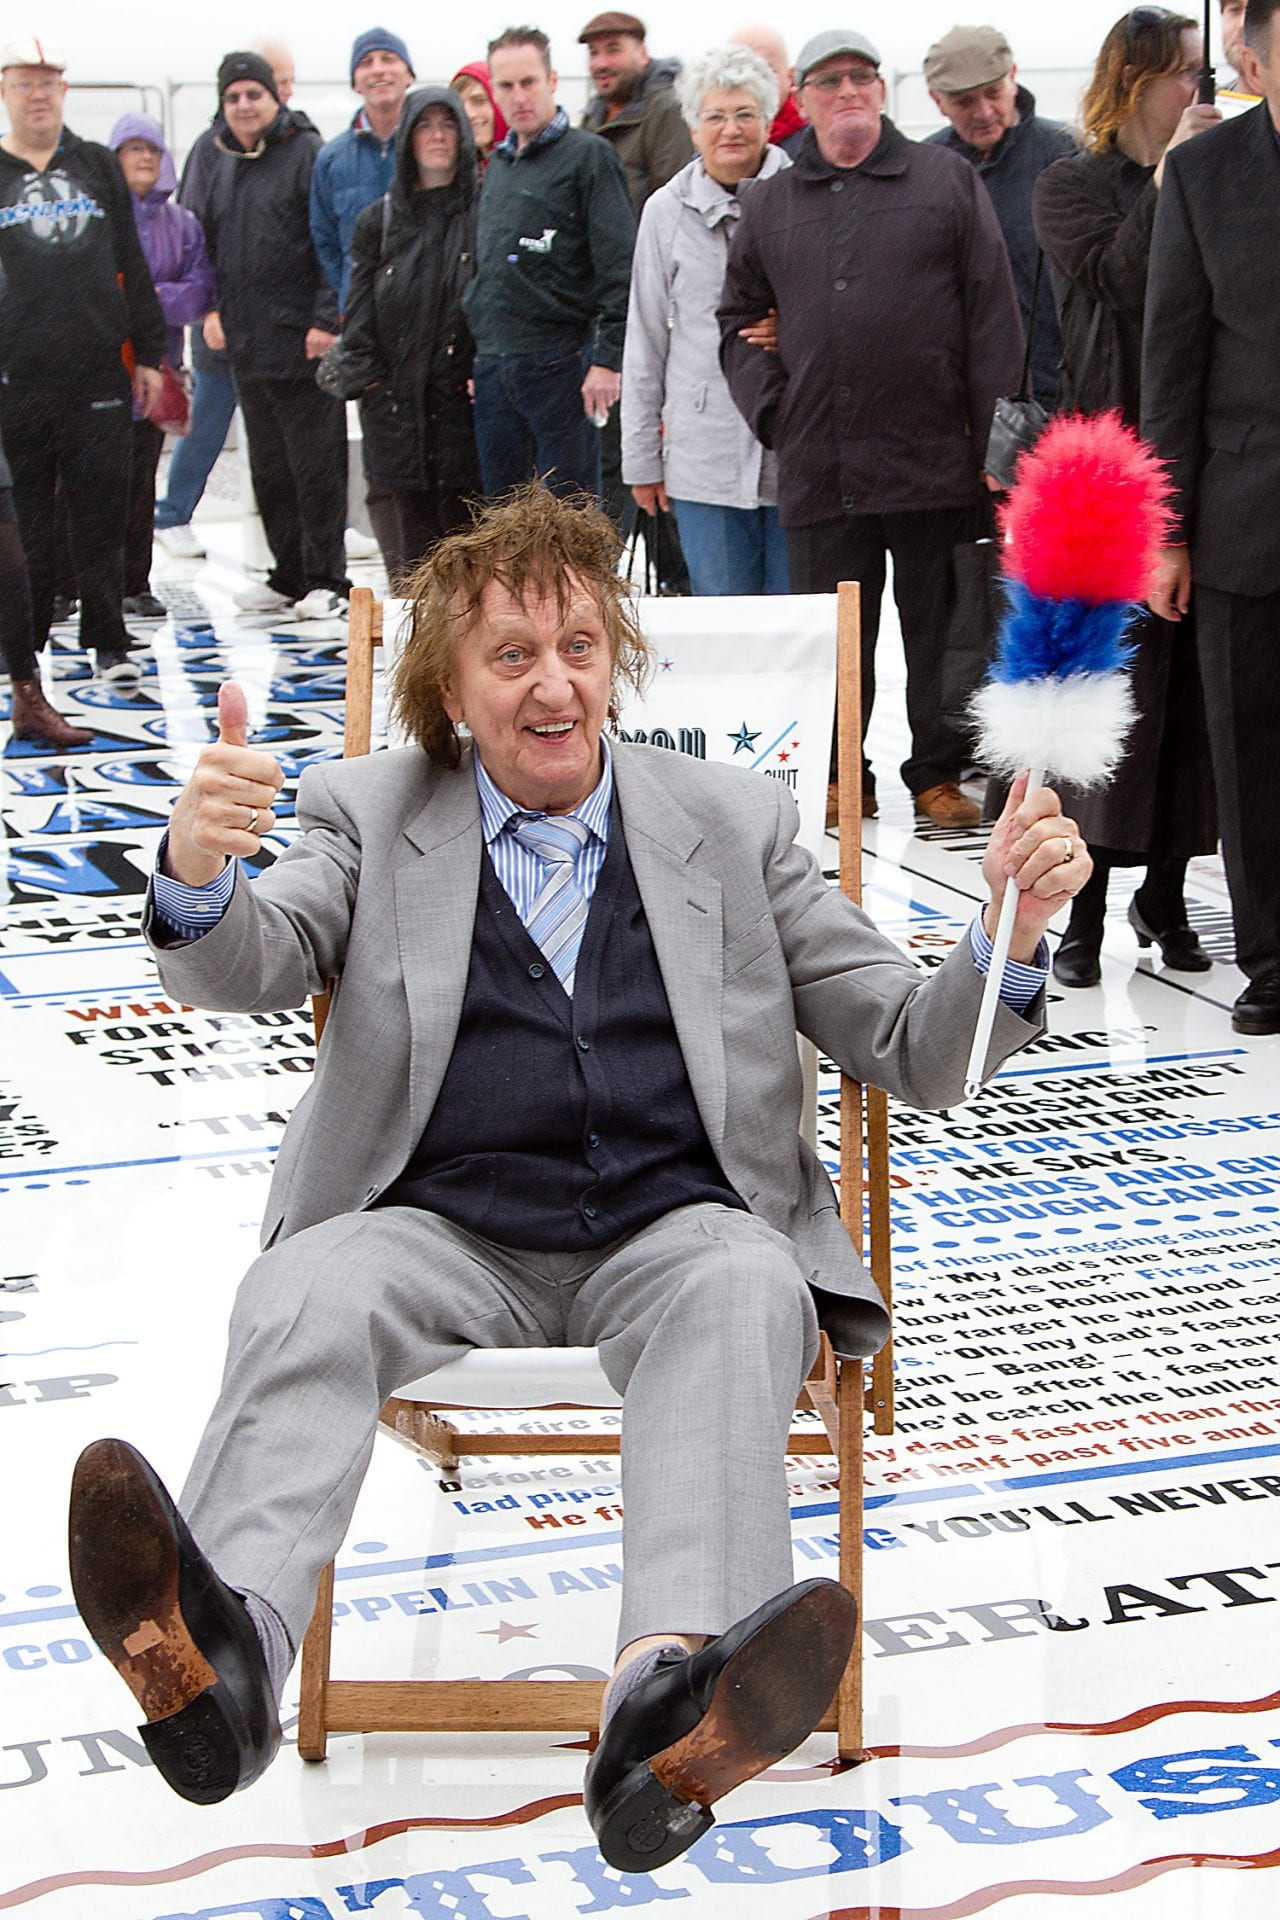 Ken Dodd opening the Comedy Carpet. Photo: David Hewitt